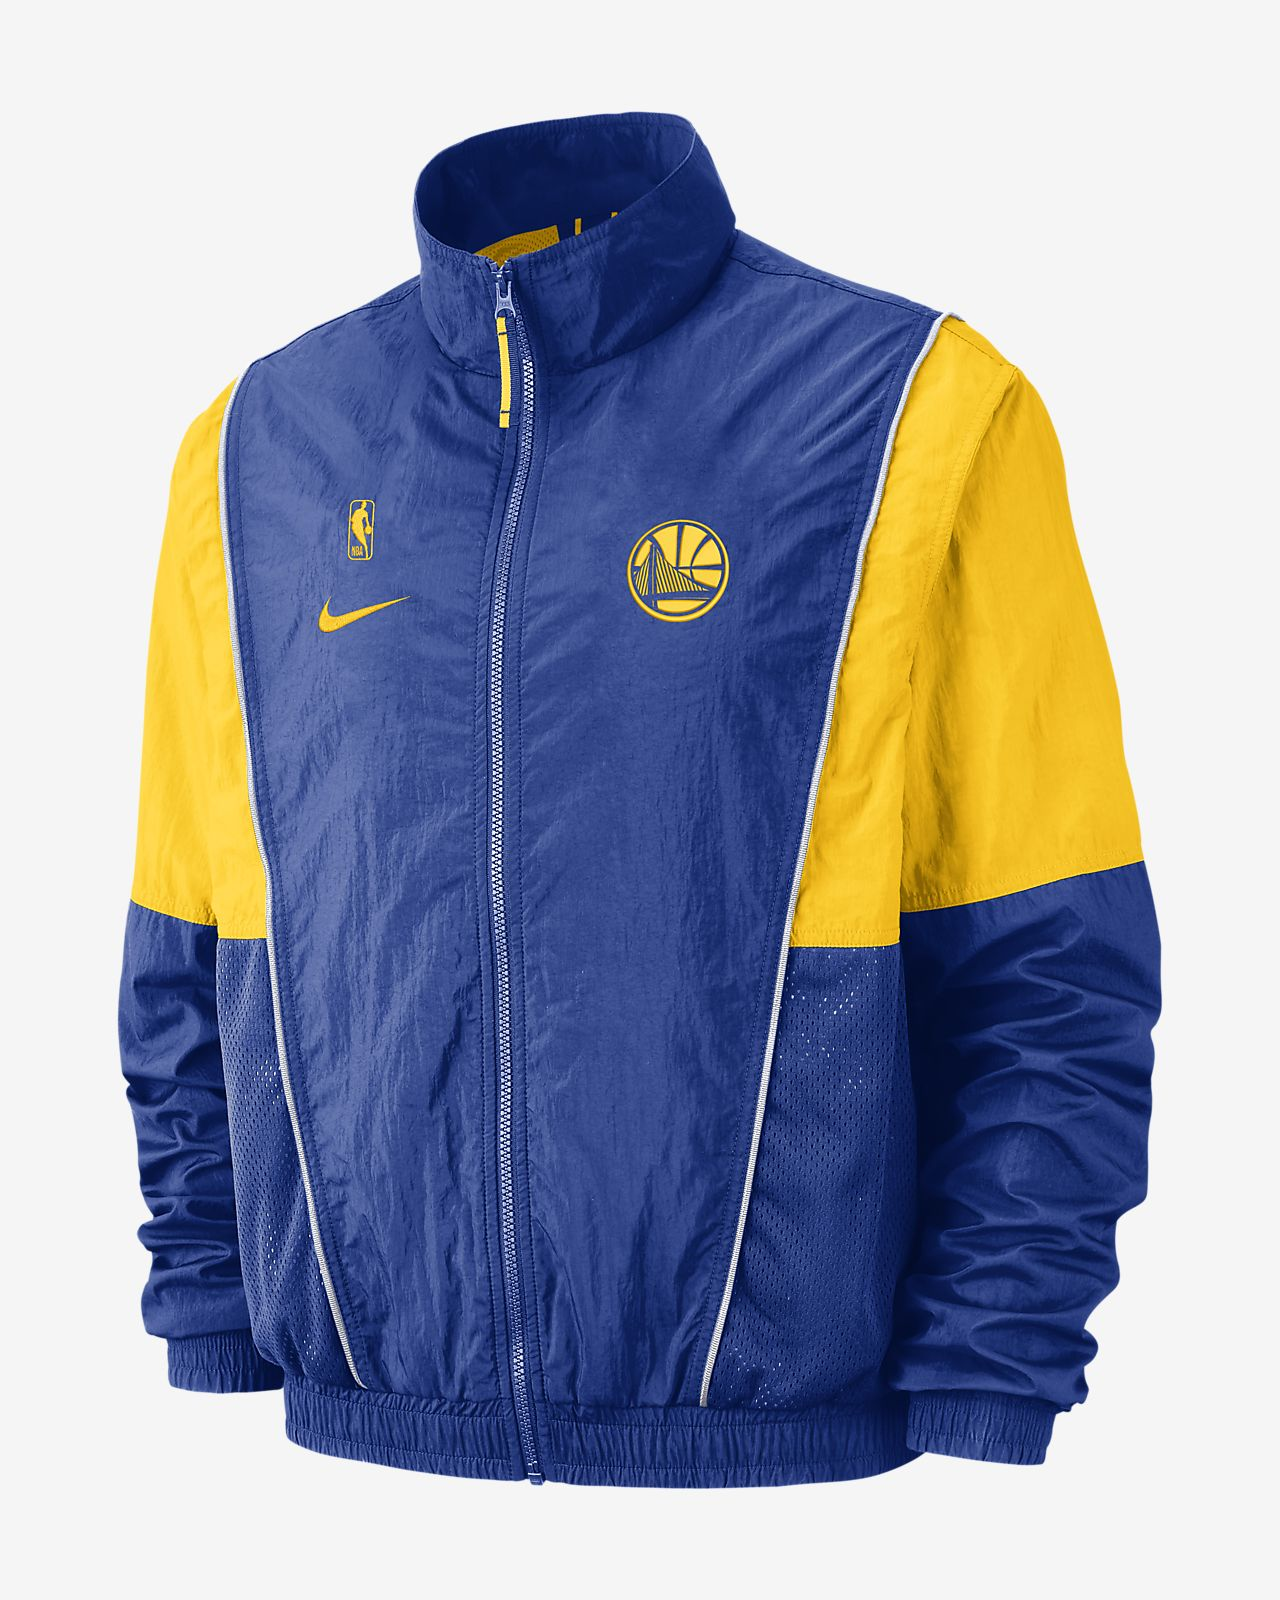 Golden State Warriors Nike Men's NBA Tracksuit Jacket